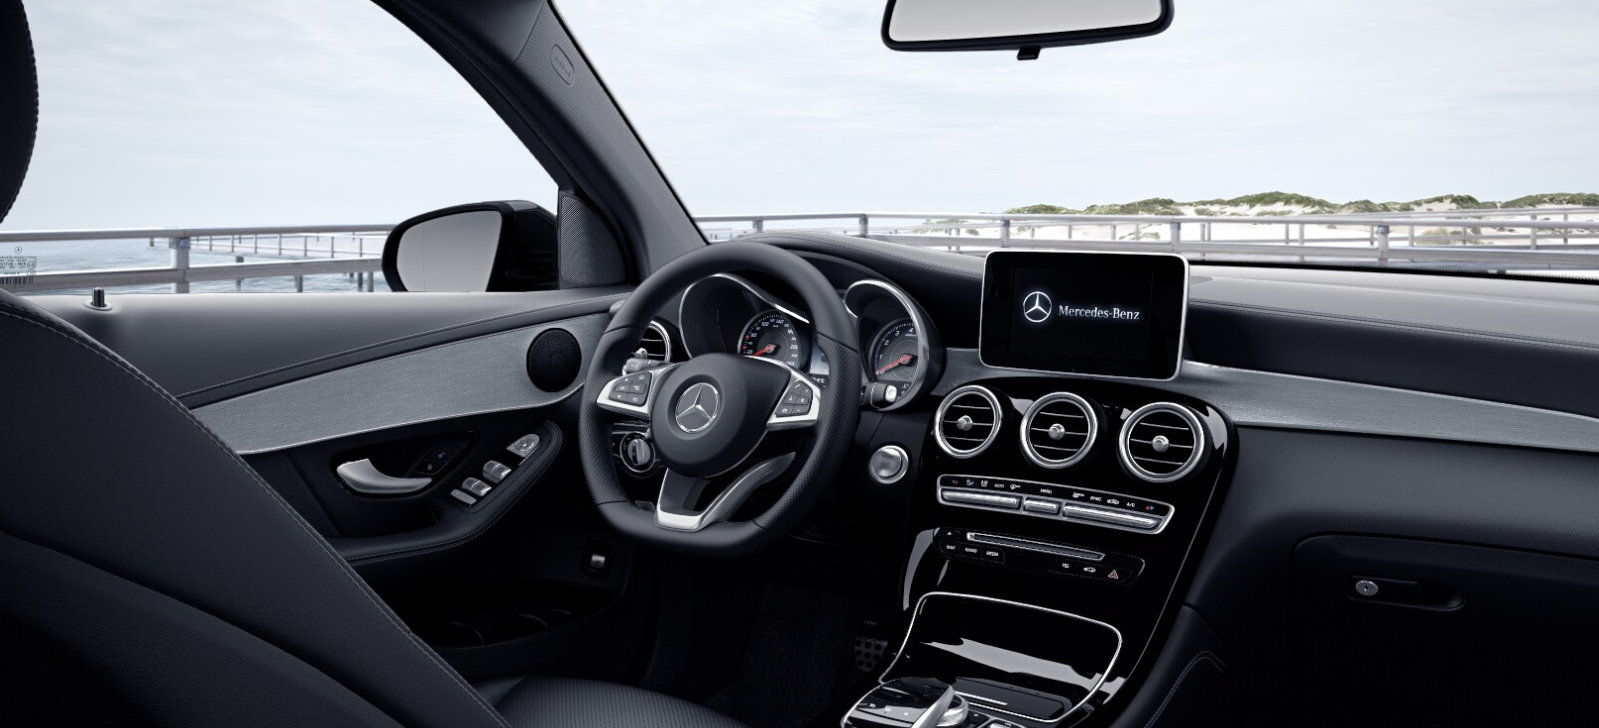 Mercedes-Benz-GLC-leasen-5